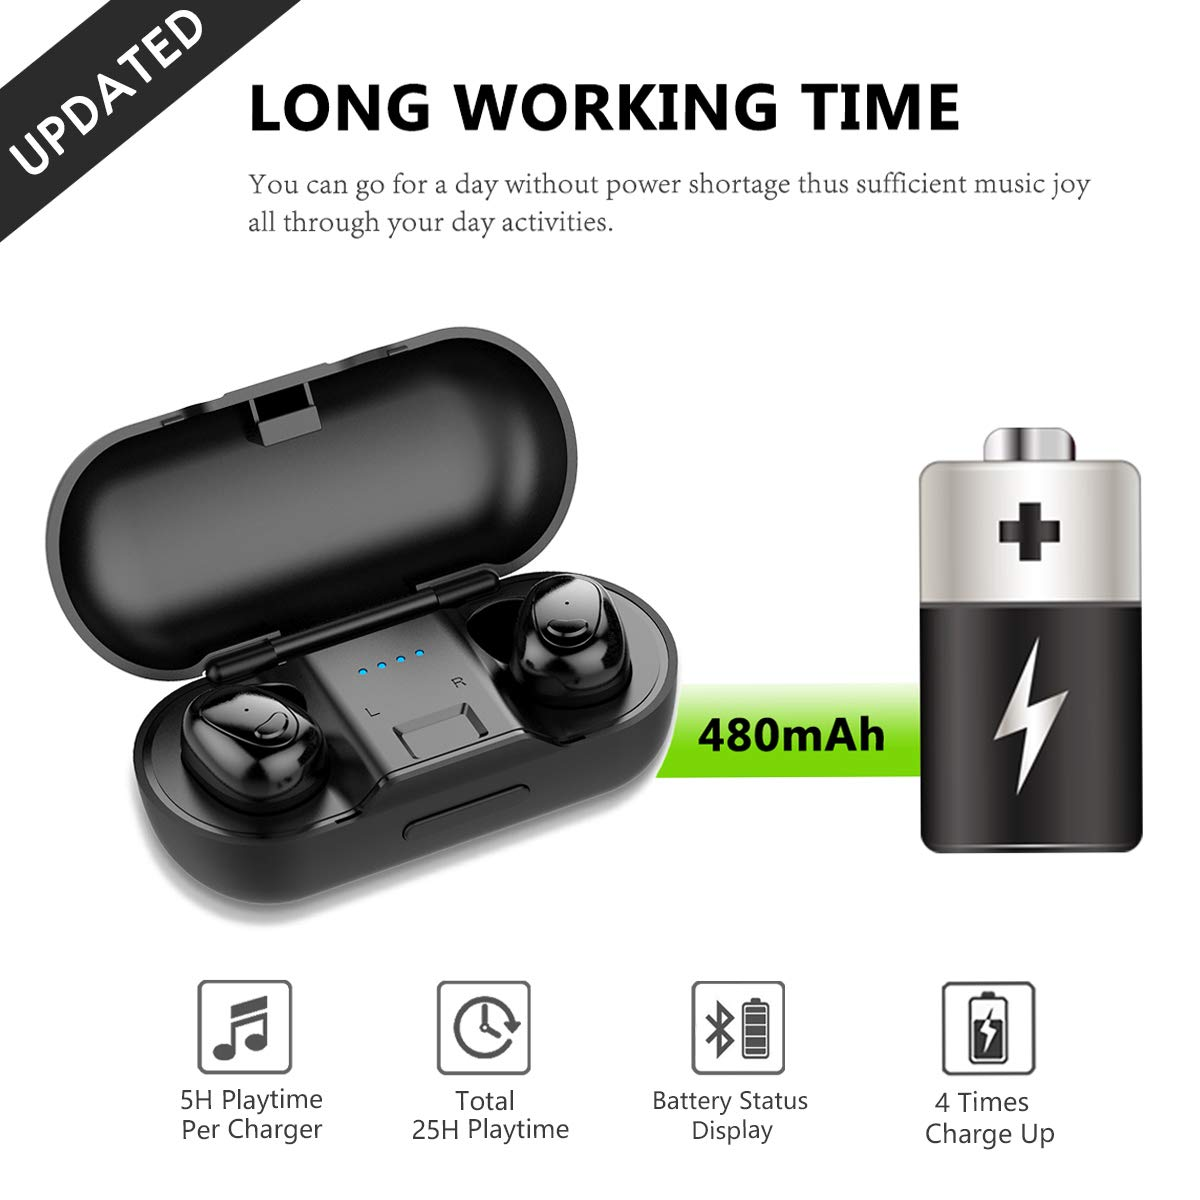 Wireless Earbuds Bluetooth 5.0 Headphones – Latest True Bluetooth Earbuds Sports Earphones, HiFi 3D Stereo Sound with 25H Playtime, Physical Noise Reduction, Portable Charging Case and Built-in Mic